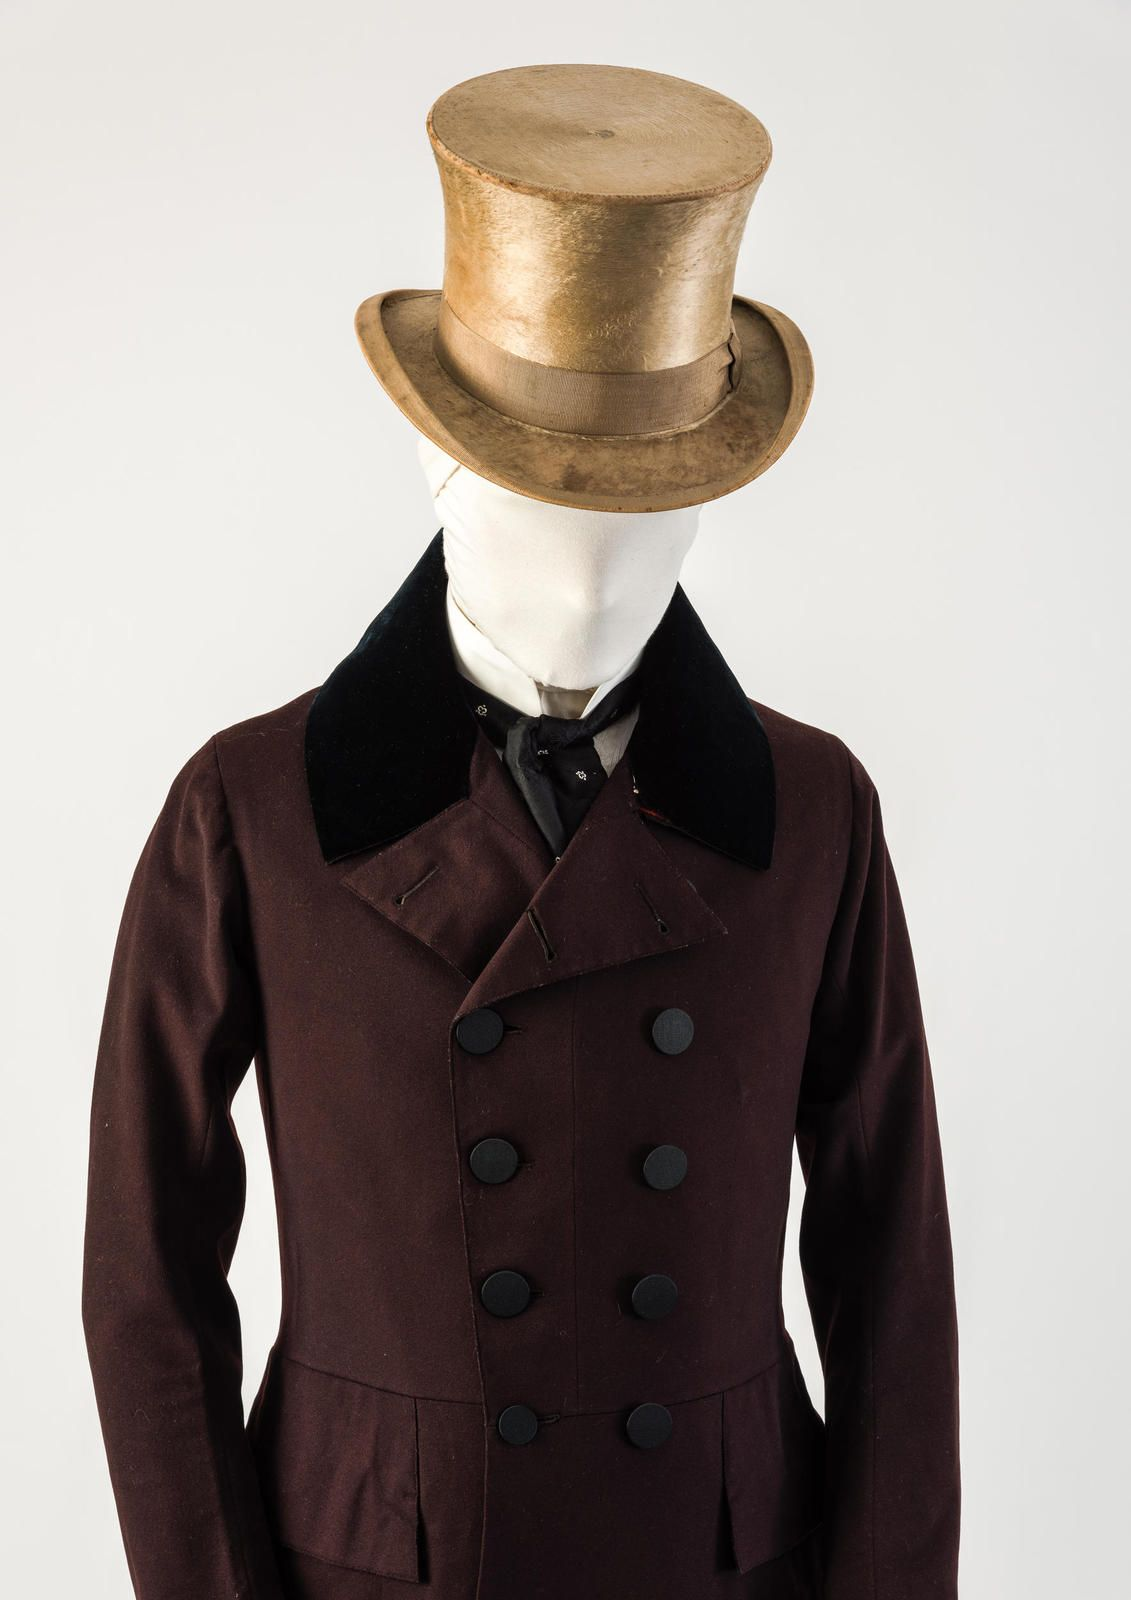 c86dd99216a A frock coat and beaver top hat. Also a neck tie common from 1820-1850.  www.fashionmuseum.co.uk galleries history-fashion-100-objects-gallery